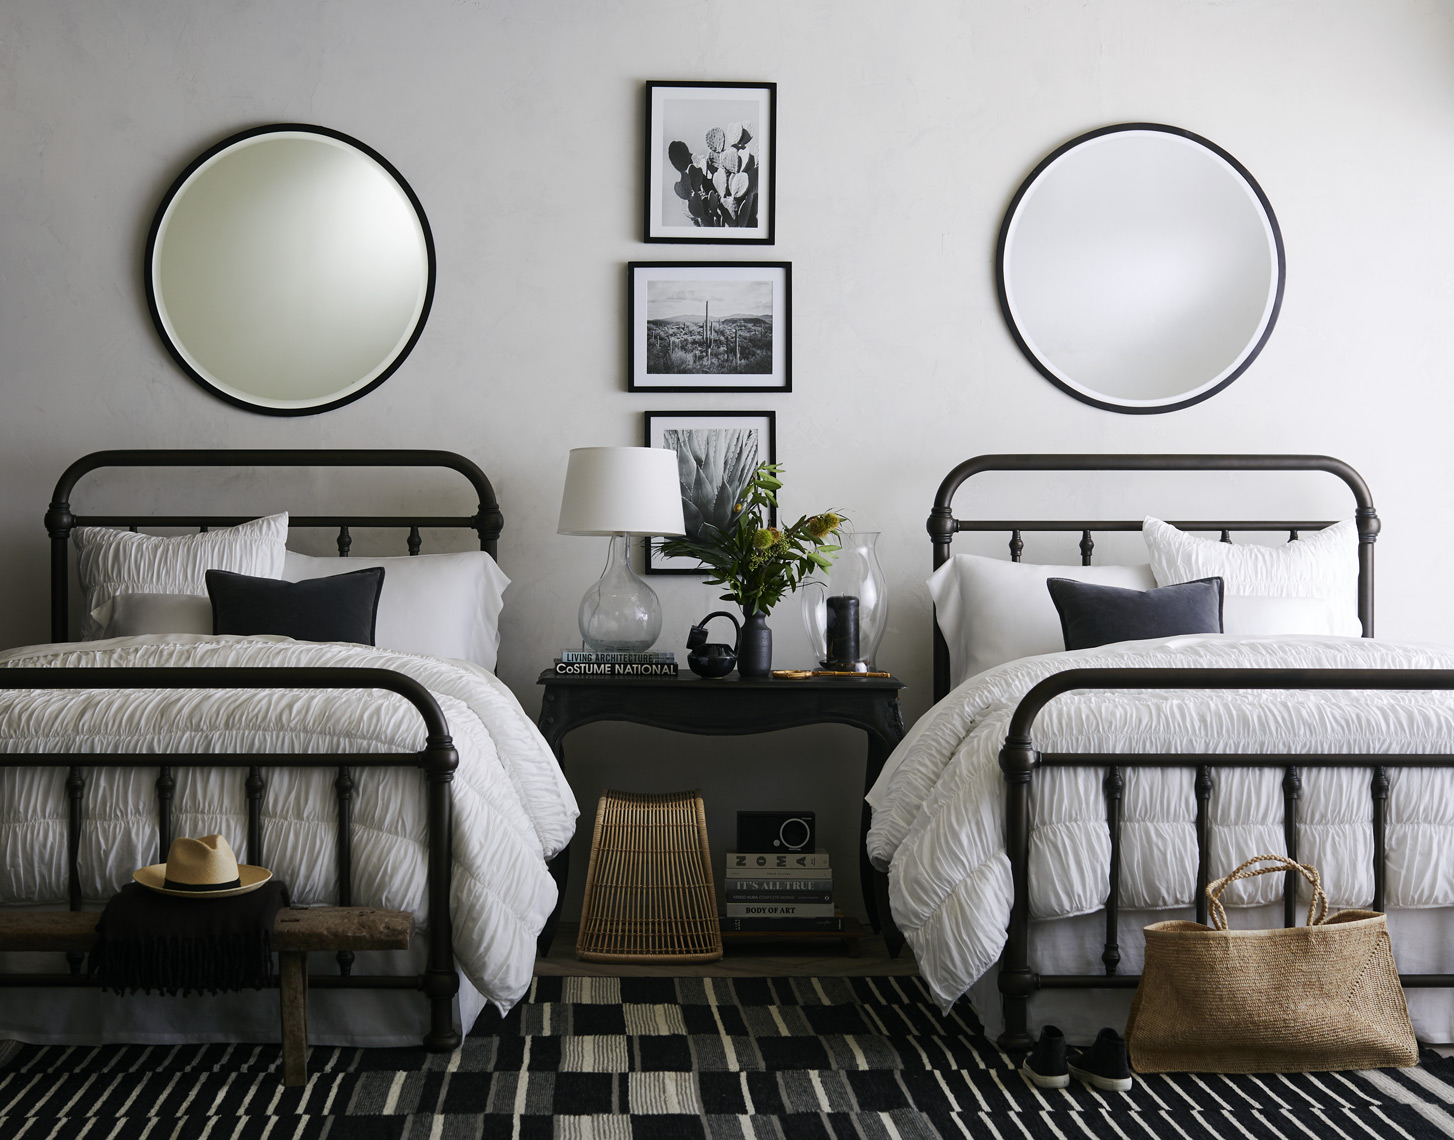 Matching twin beds and mirrors in bedroom